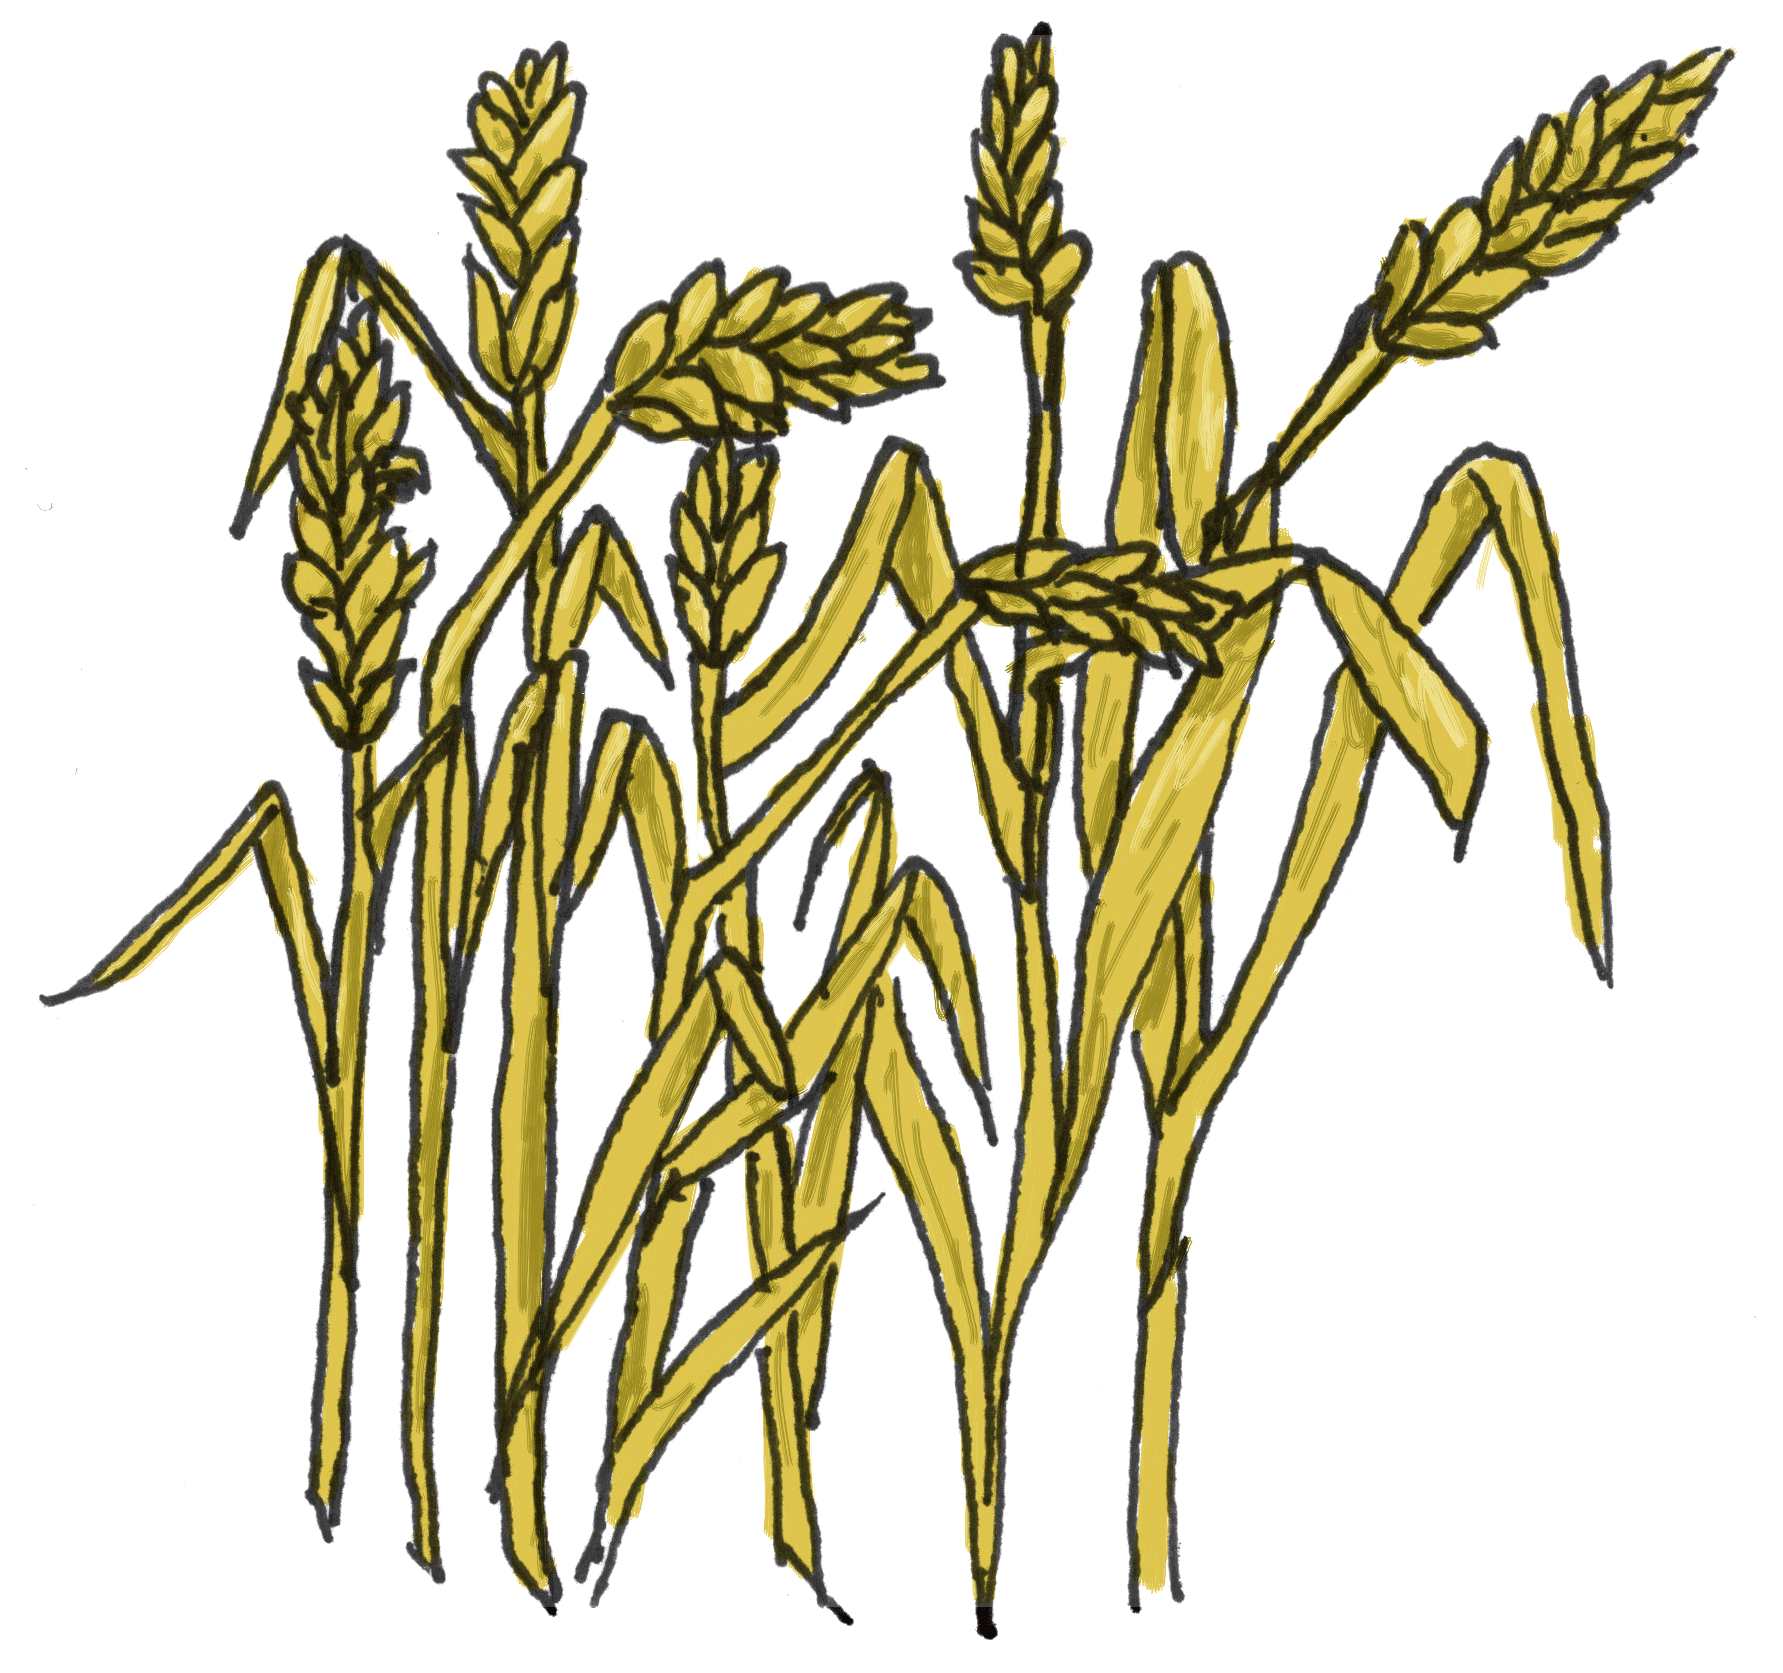 graphic royalty free download Grains clipart palay. Wheat plant free on